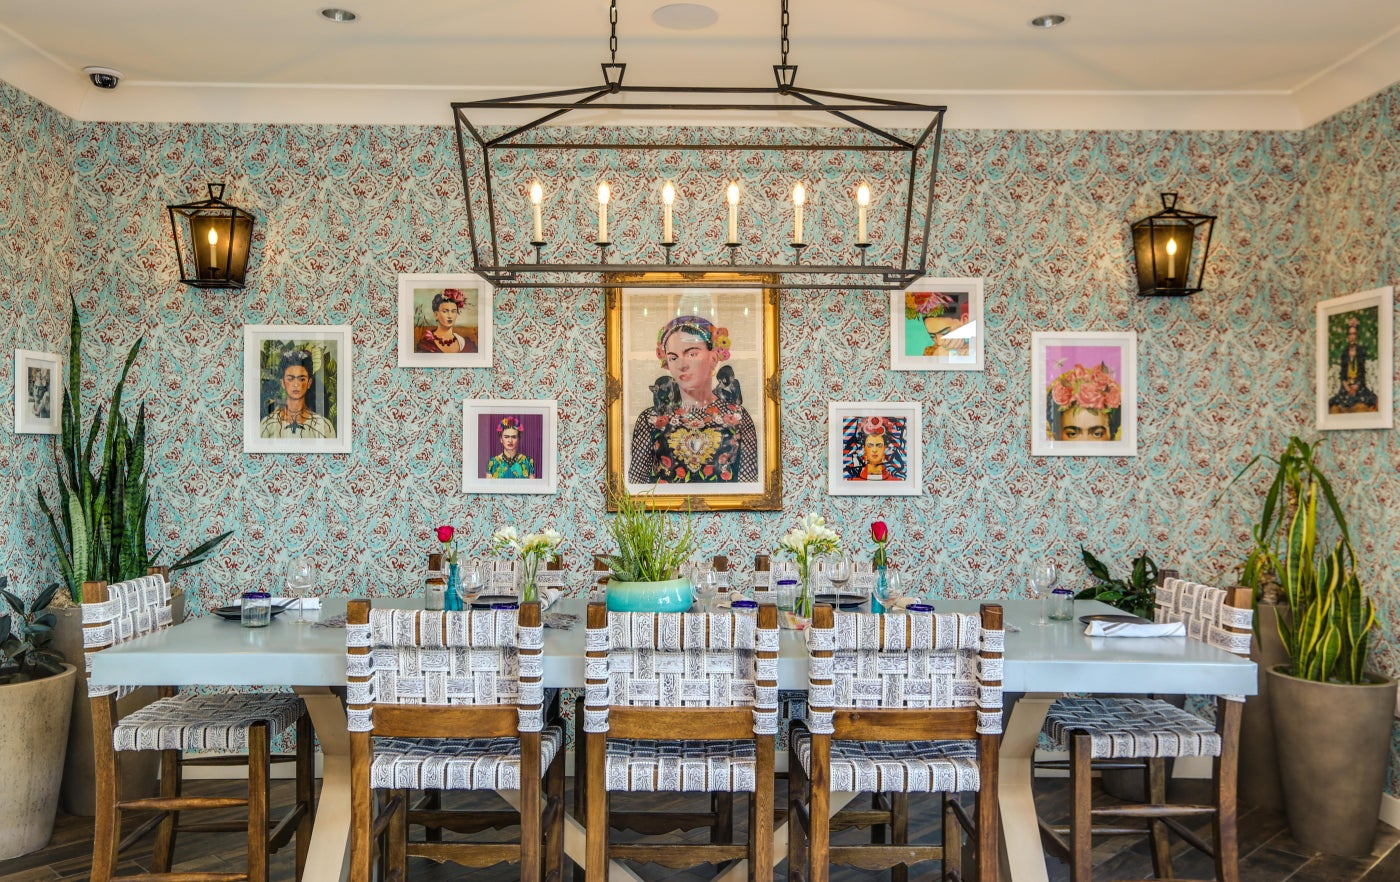 Frida Kahlo inspired dining area of La Serena Villas Hotel at Azucar